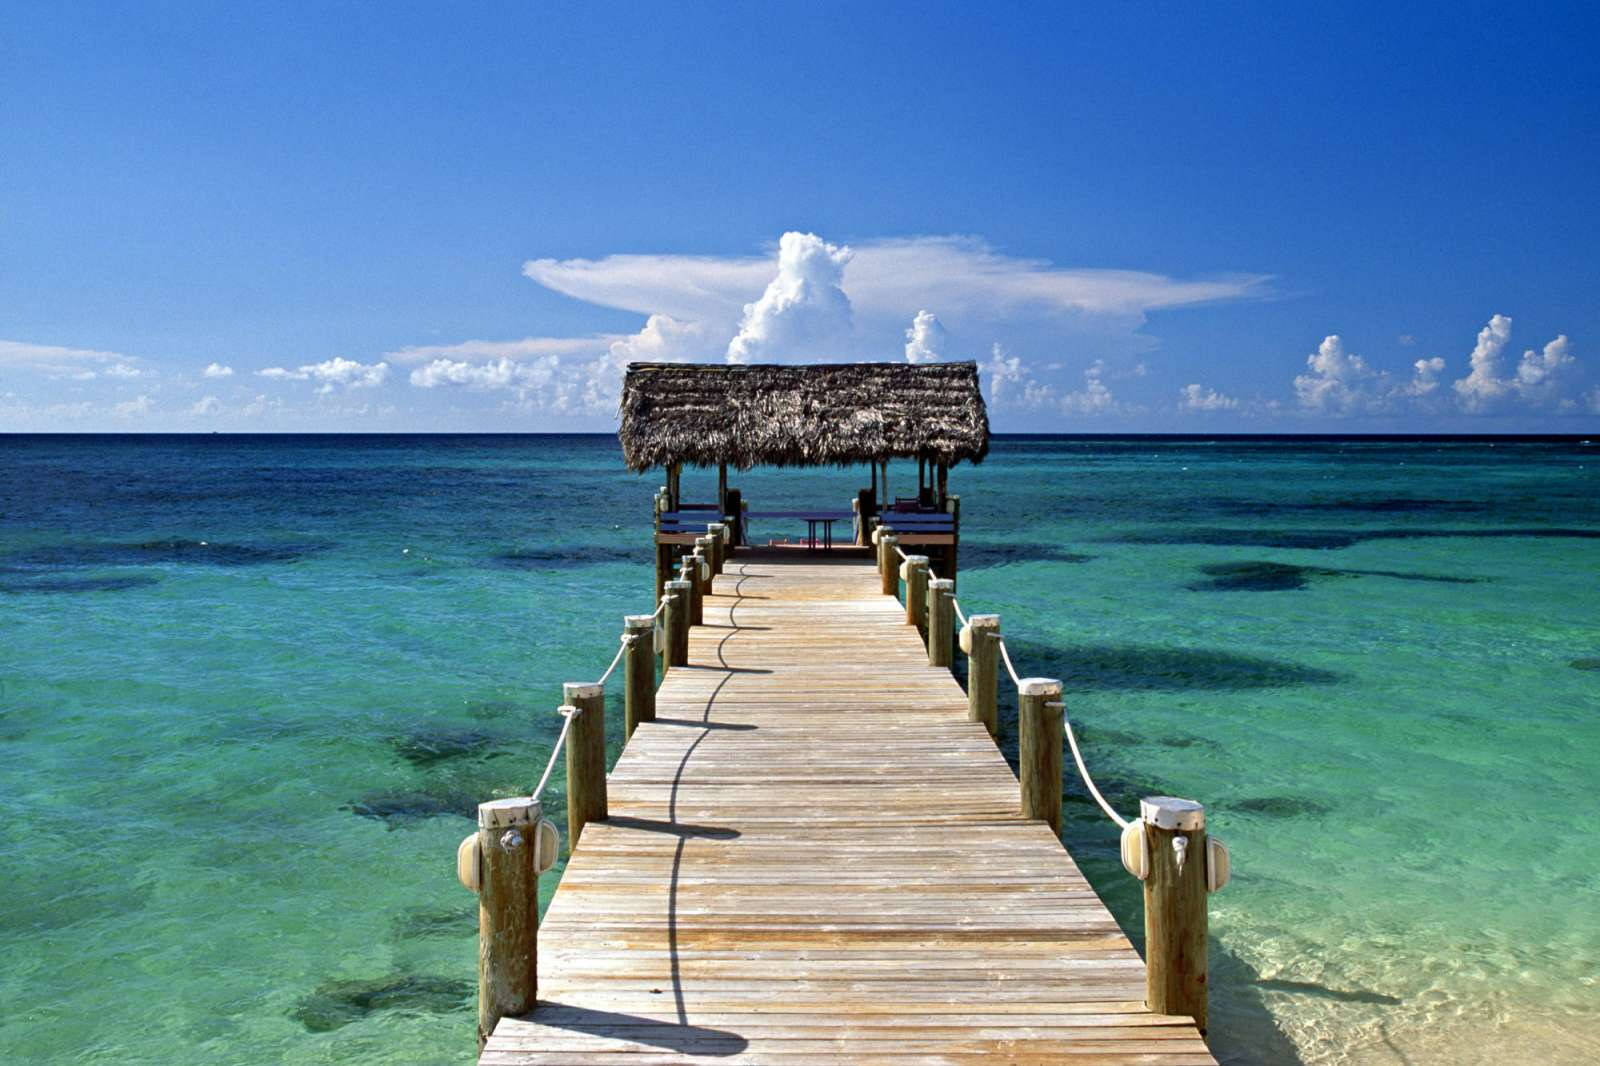 Island Bahamas Wallpapers Photos Pictures and Backgrounds 1600x1066